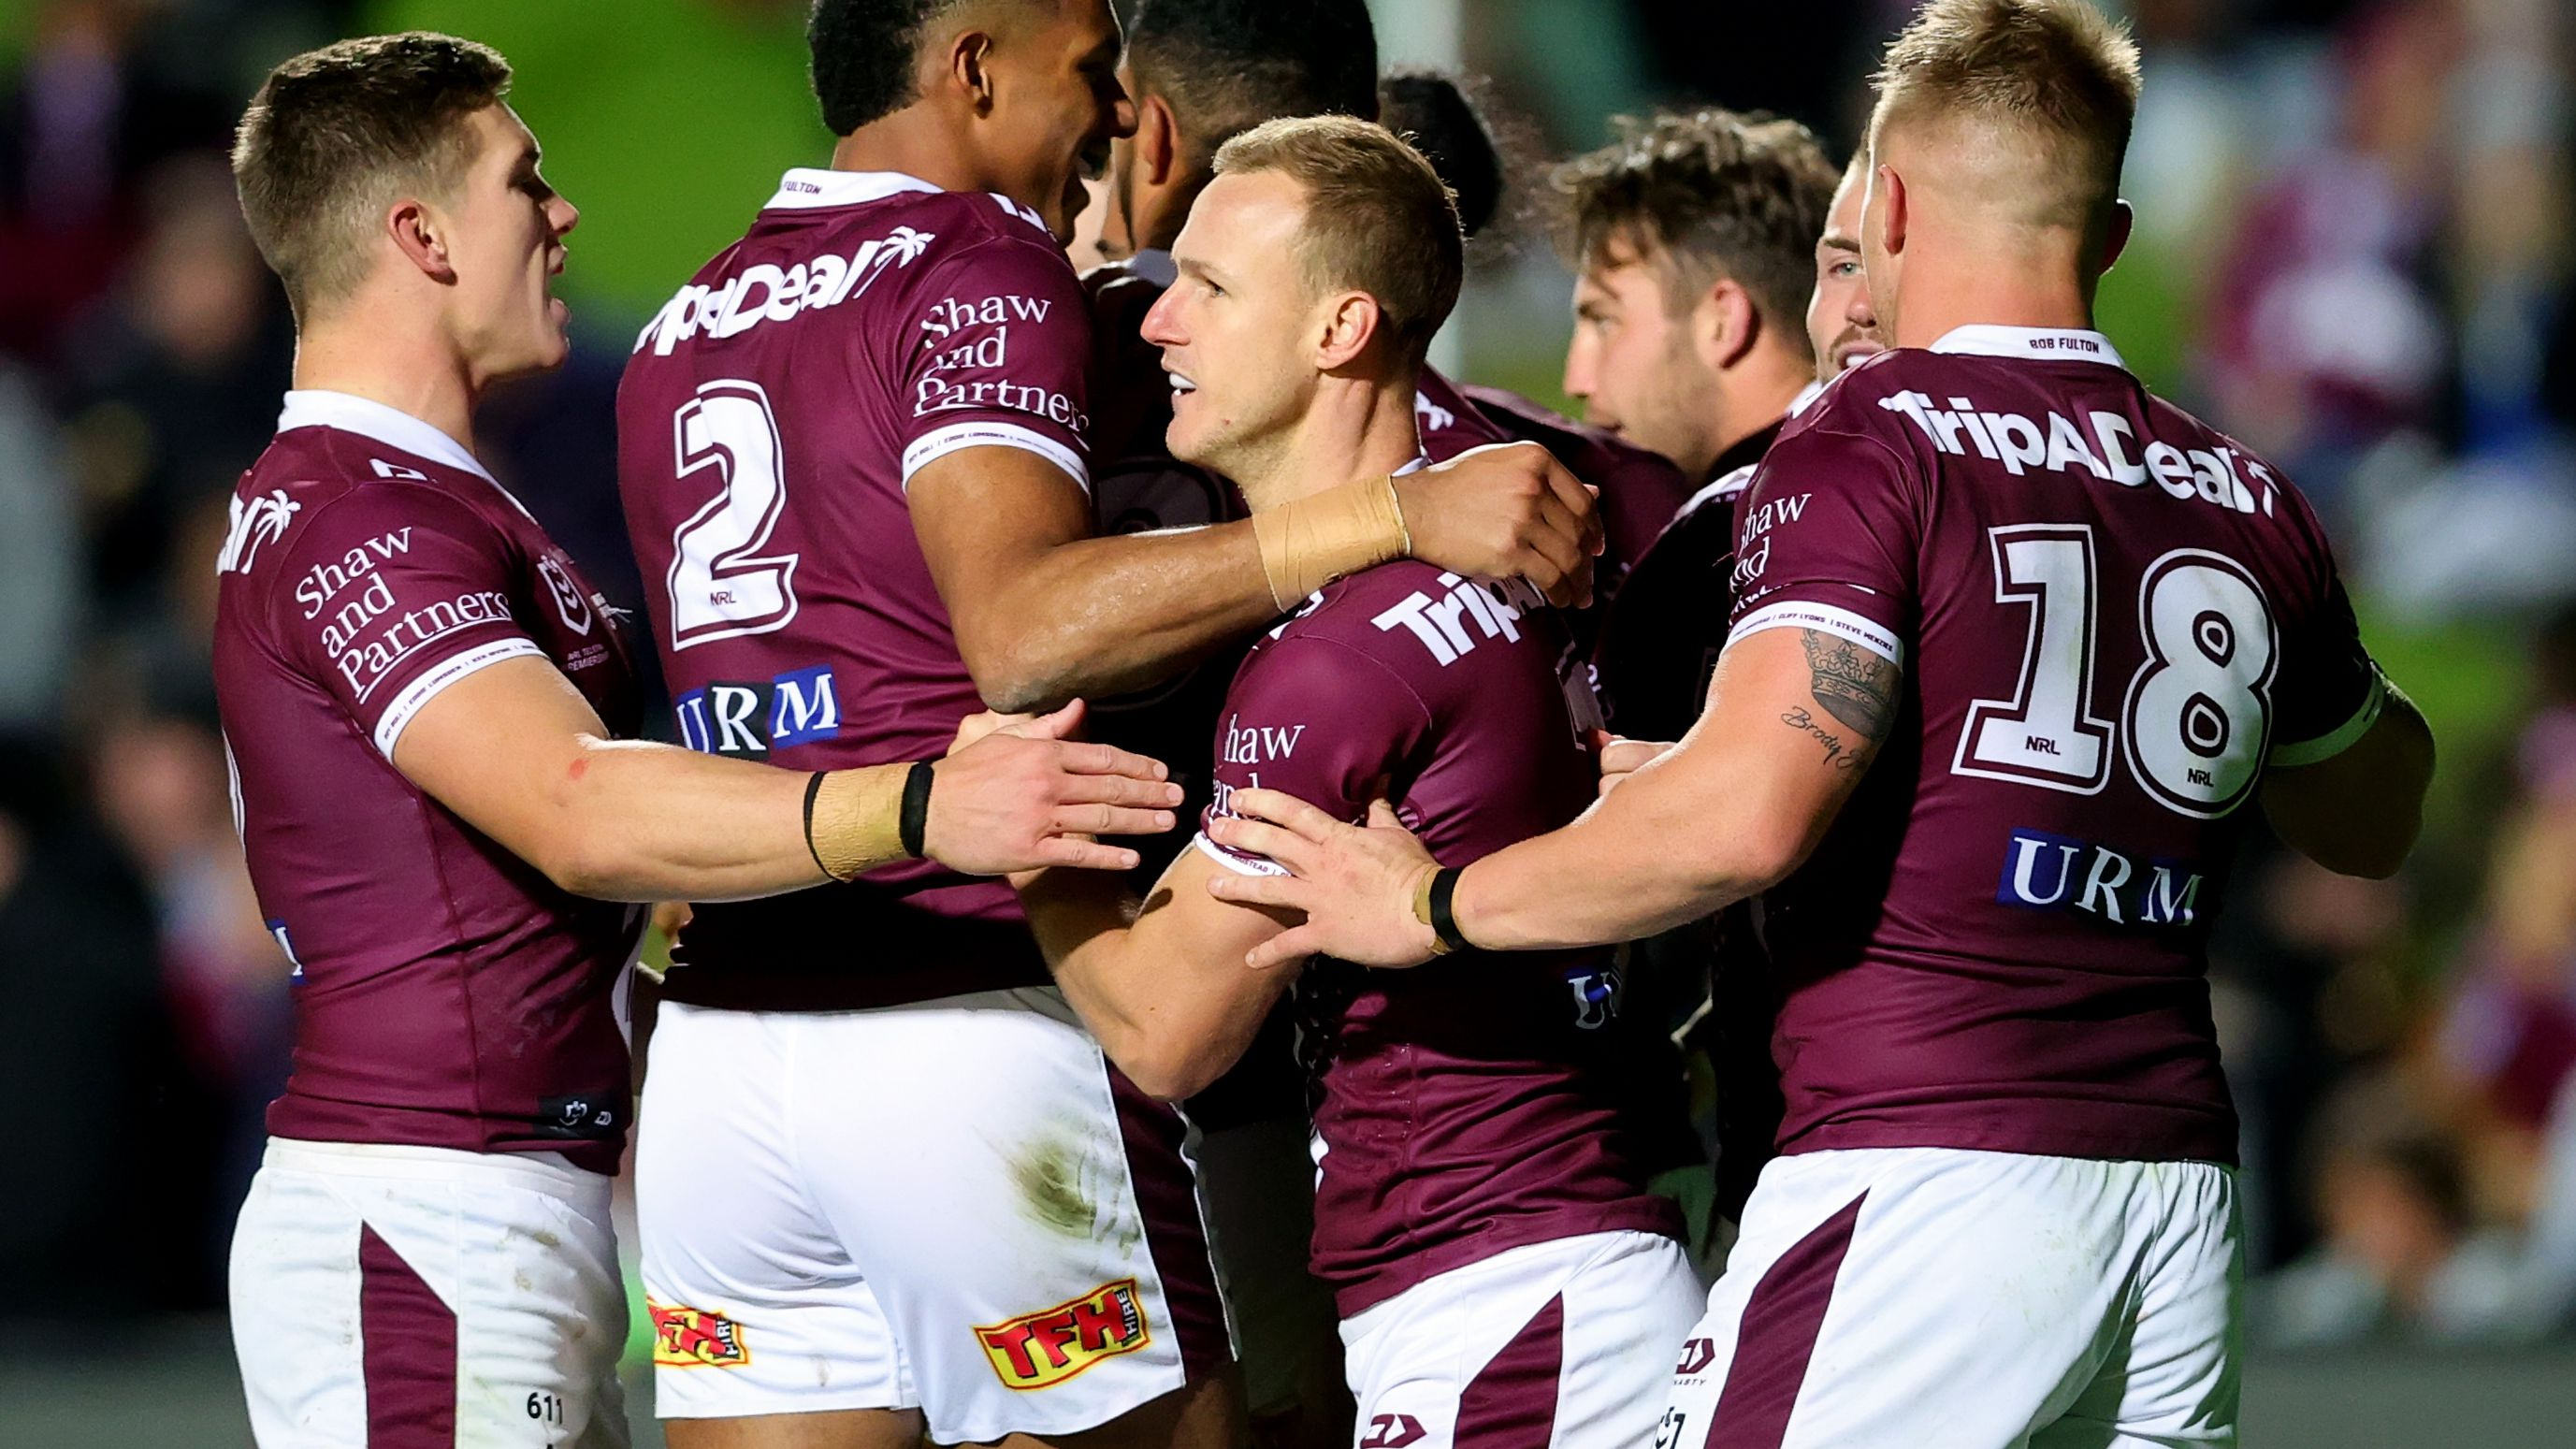 The Manly Sea Eagles.